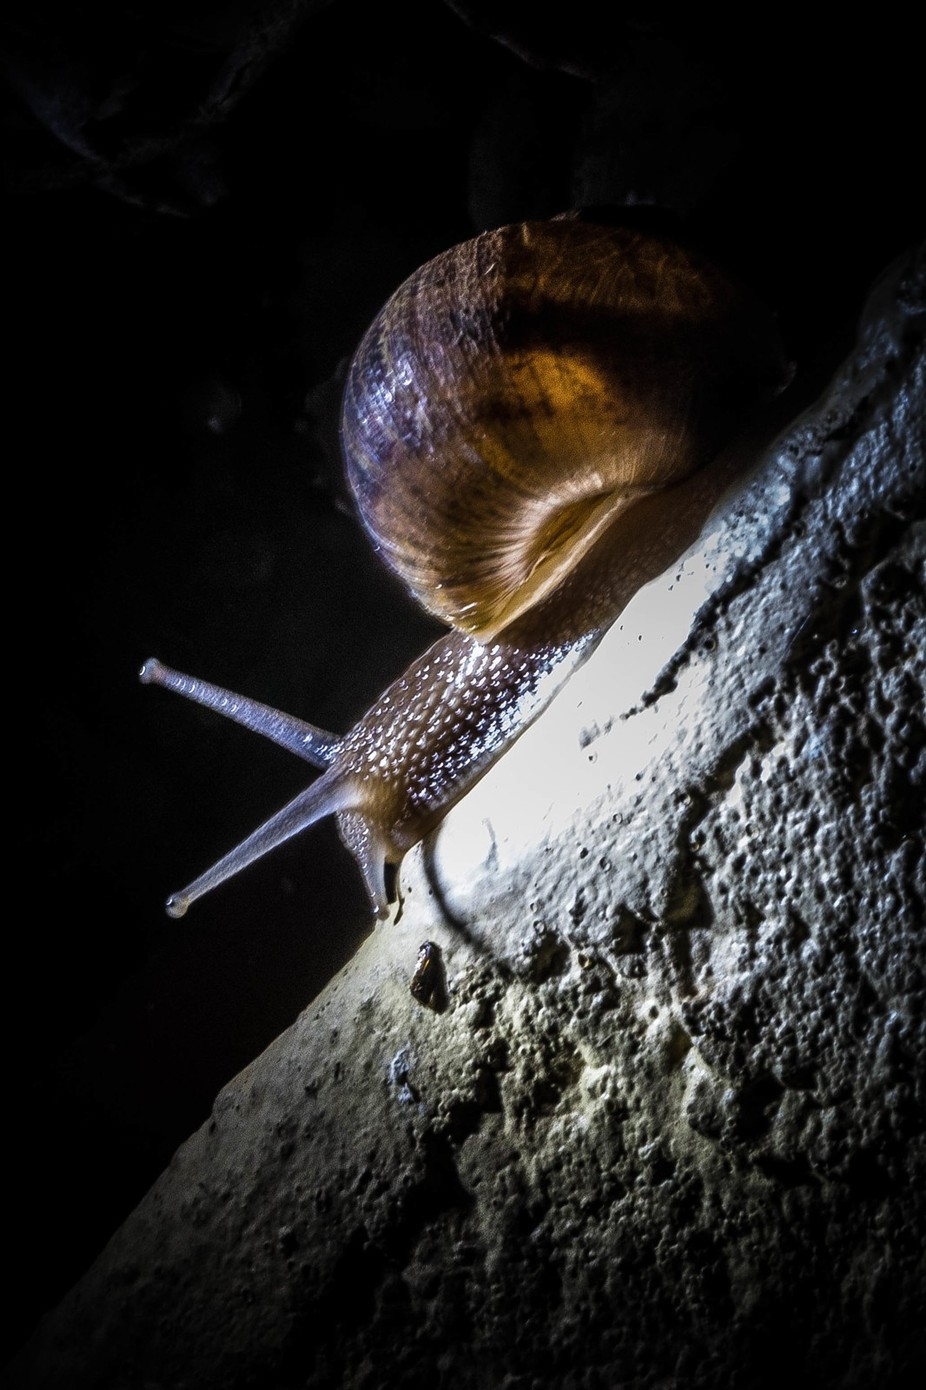 Snail going nowhere slowly